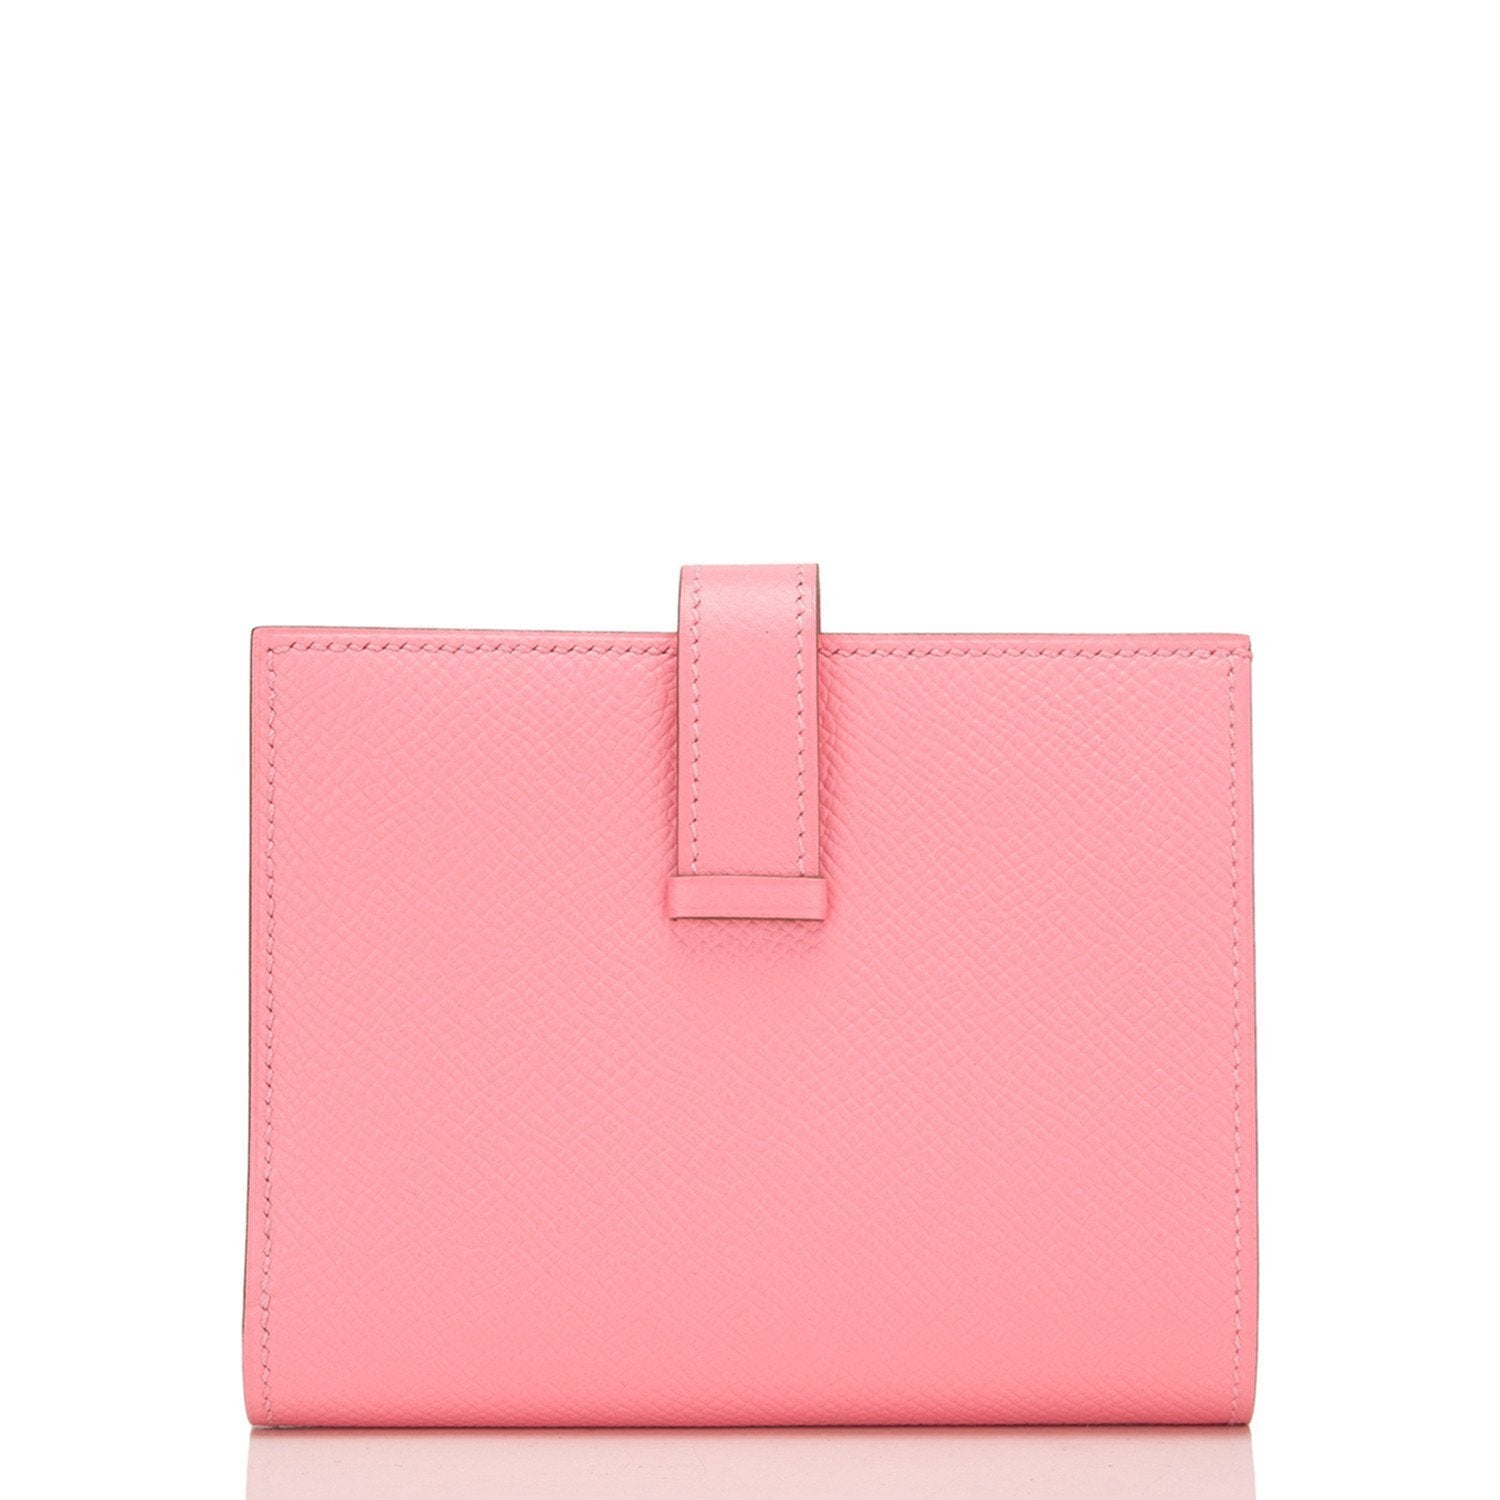 Hermes Rose Confetti Epsom Compact Bearn Wallet GHW – Madison Avenue ... 1392101a9dc03